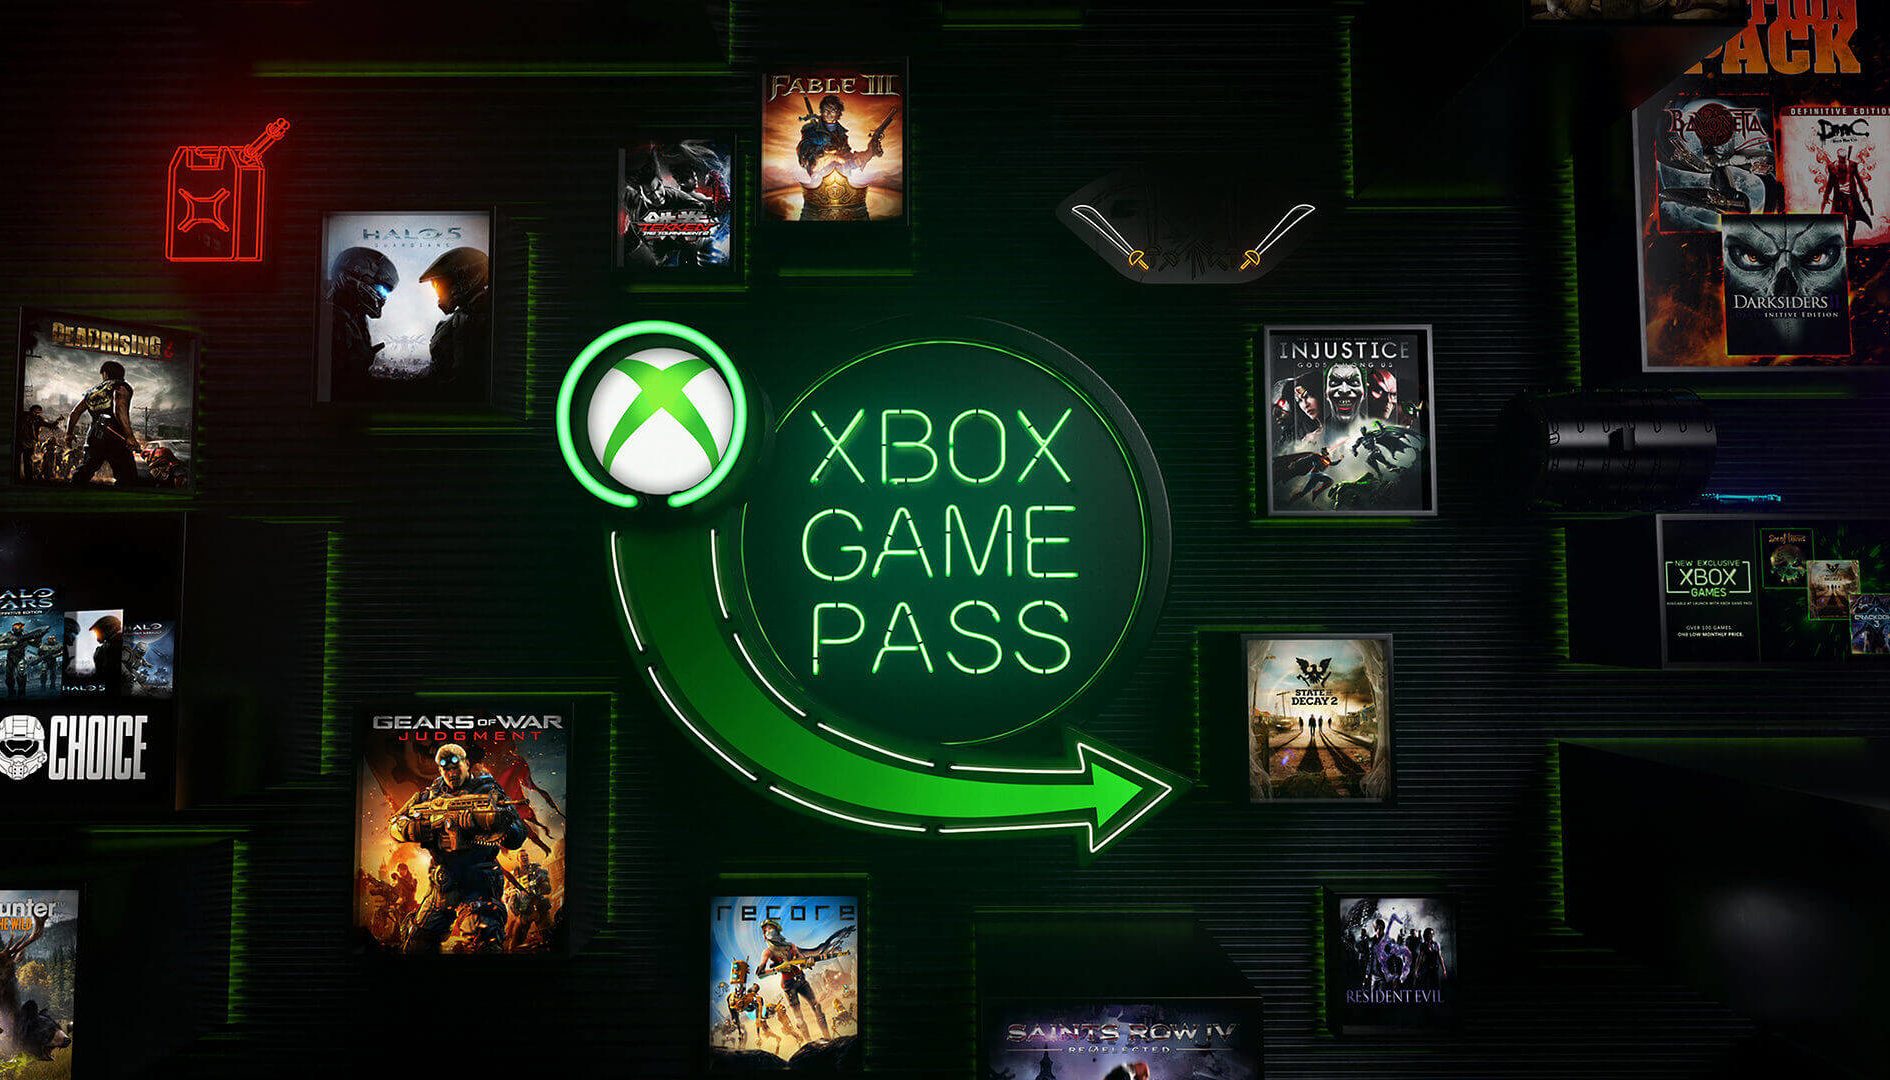 Xbox Game Pass fa bene all'intero settore, afferma Microsoft